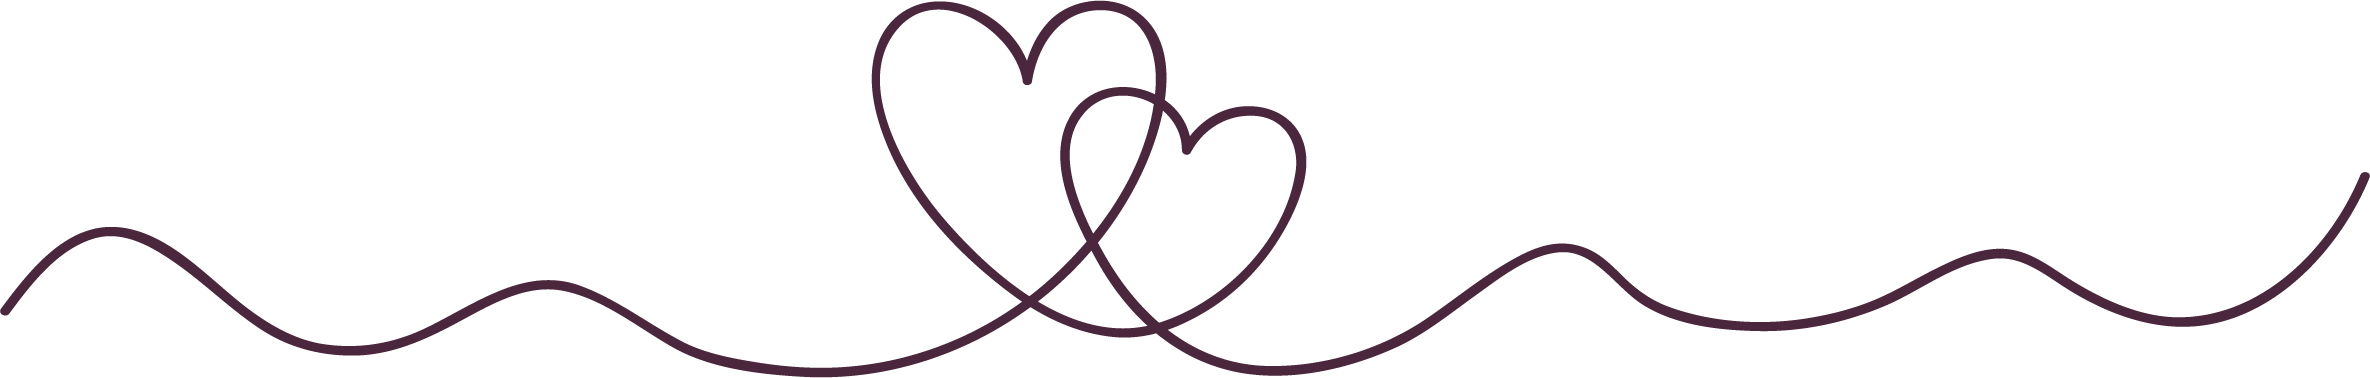 line art of two hearts